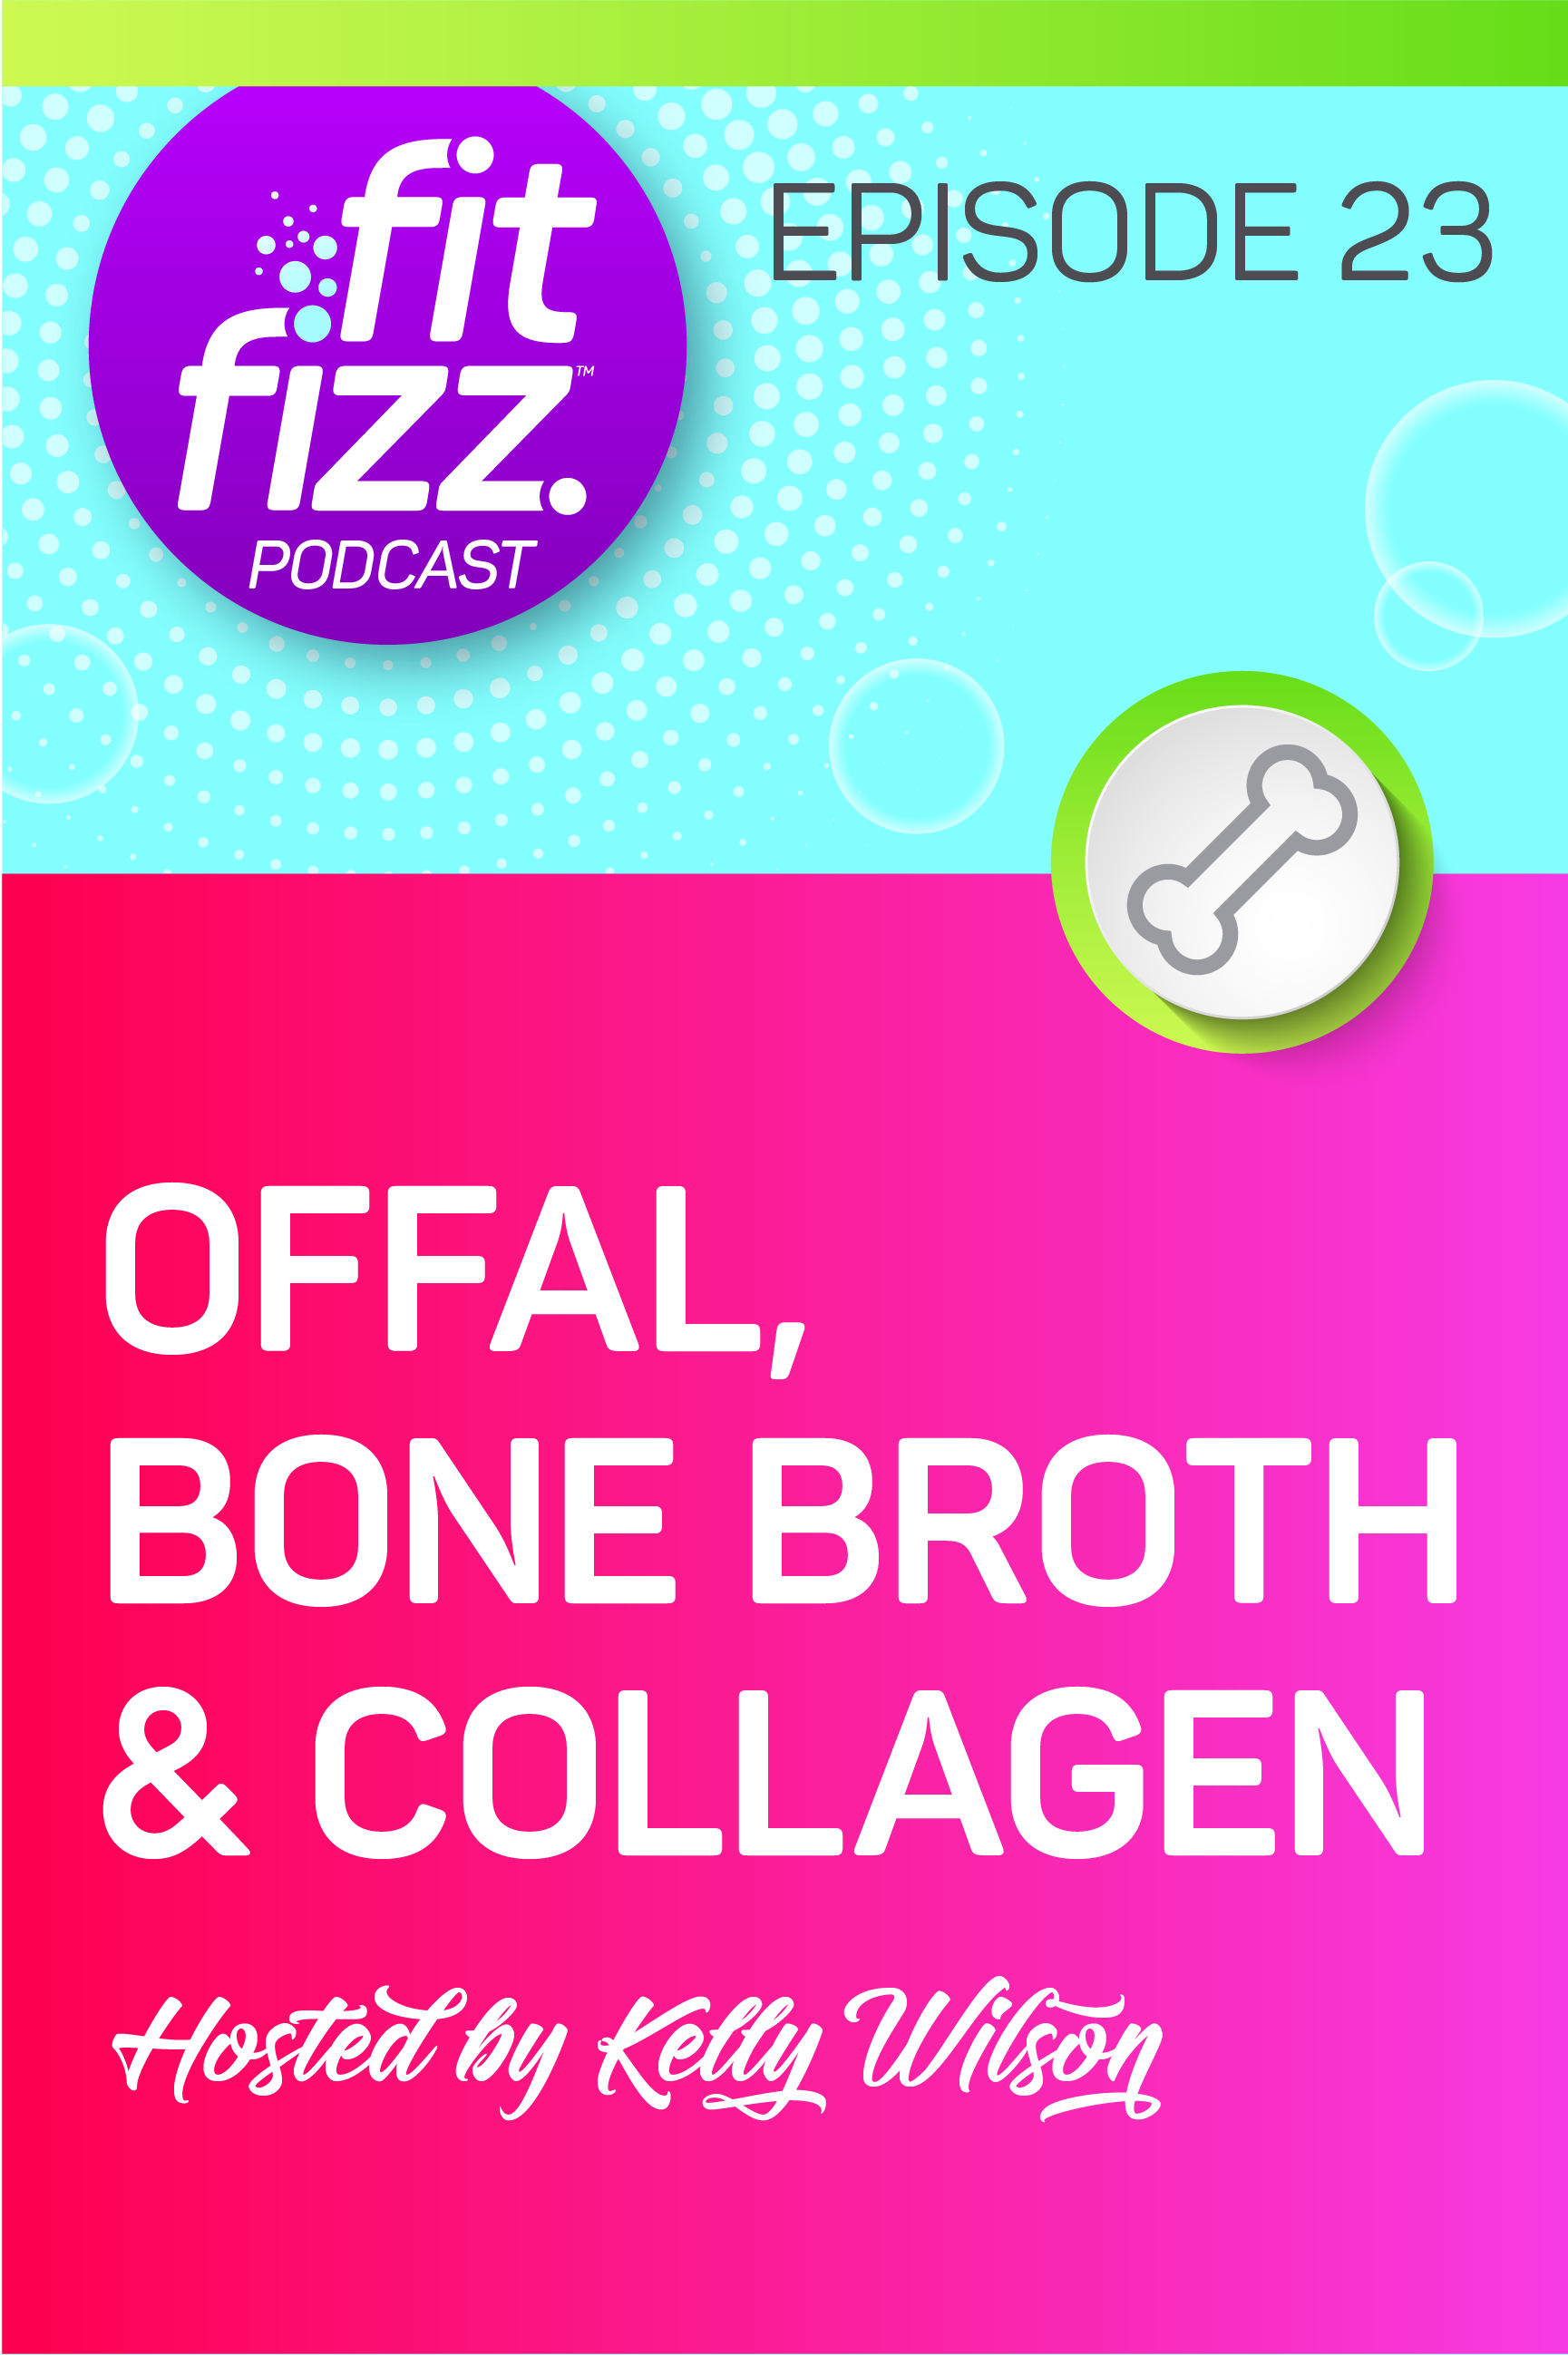 Podcast Ep. 23: Offal, bone broth, and collagen are anti-inflammatory. No matter what the state of your health is, your body will use them wisely.